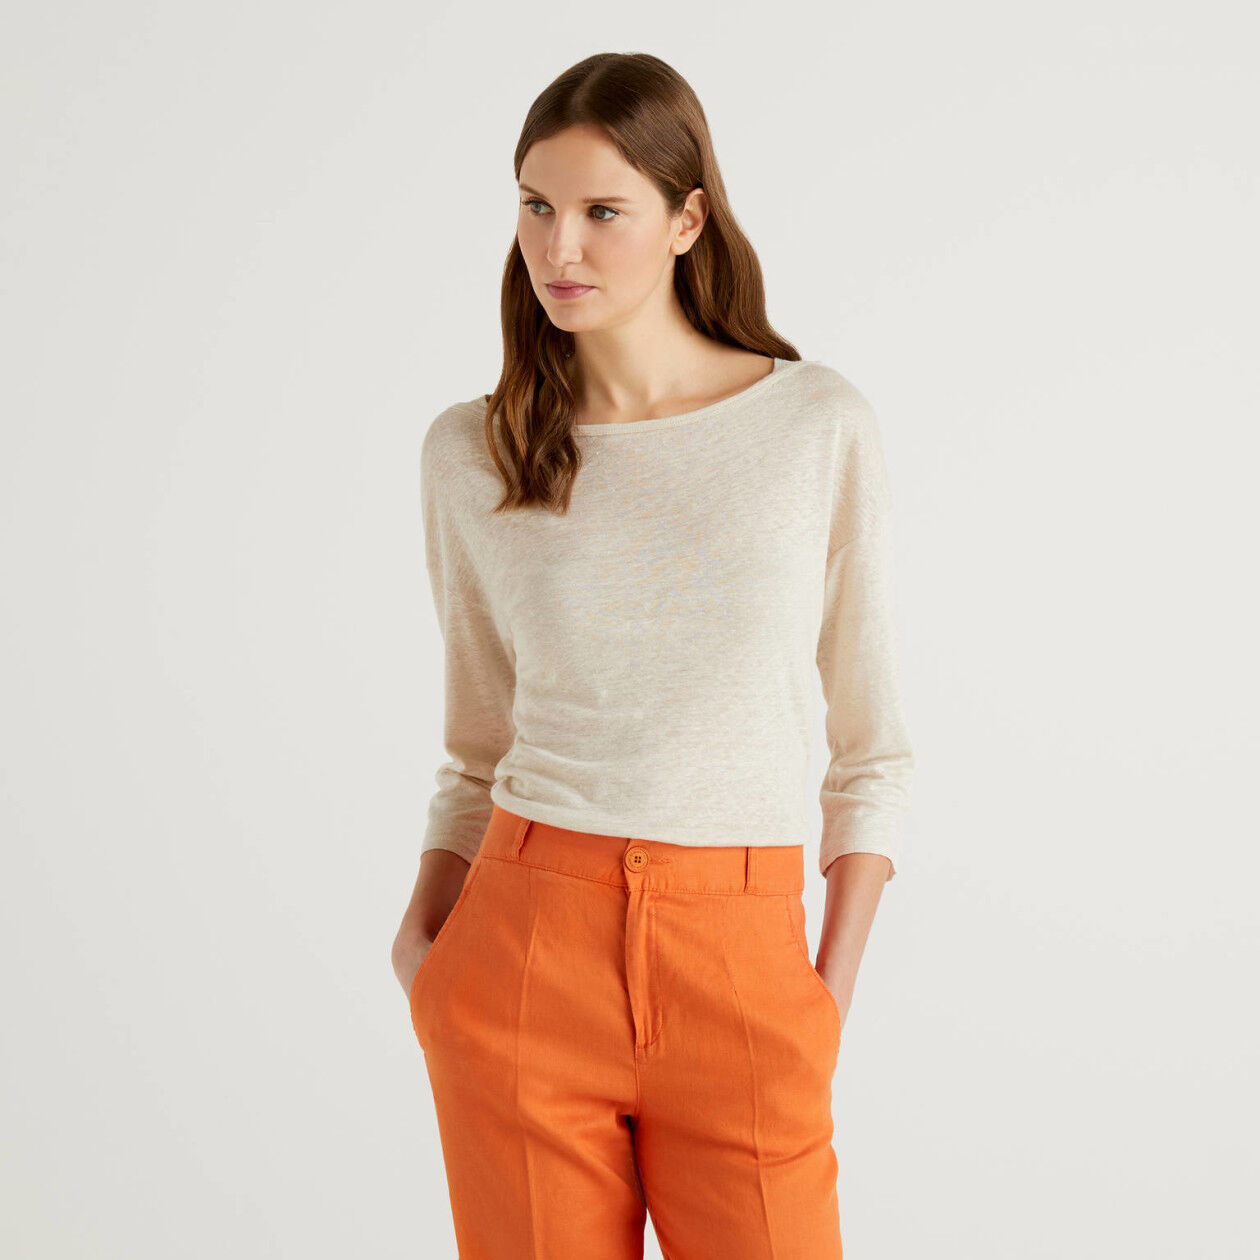 T-shirt in linen with 3/4 sleeves